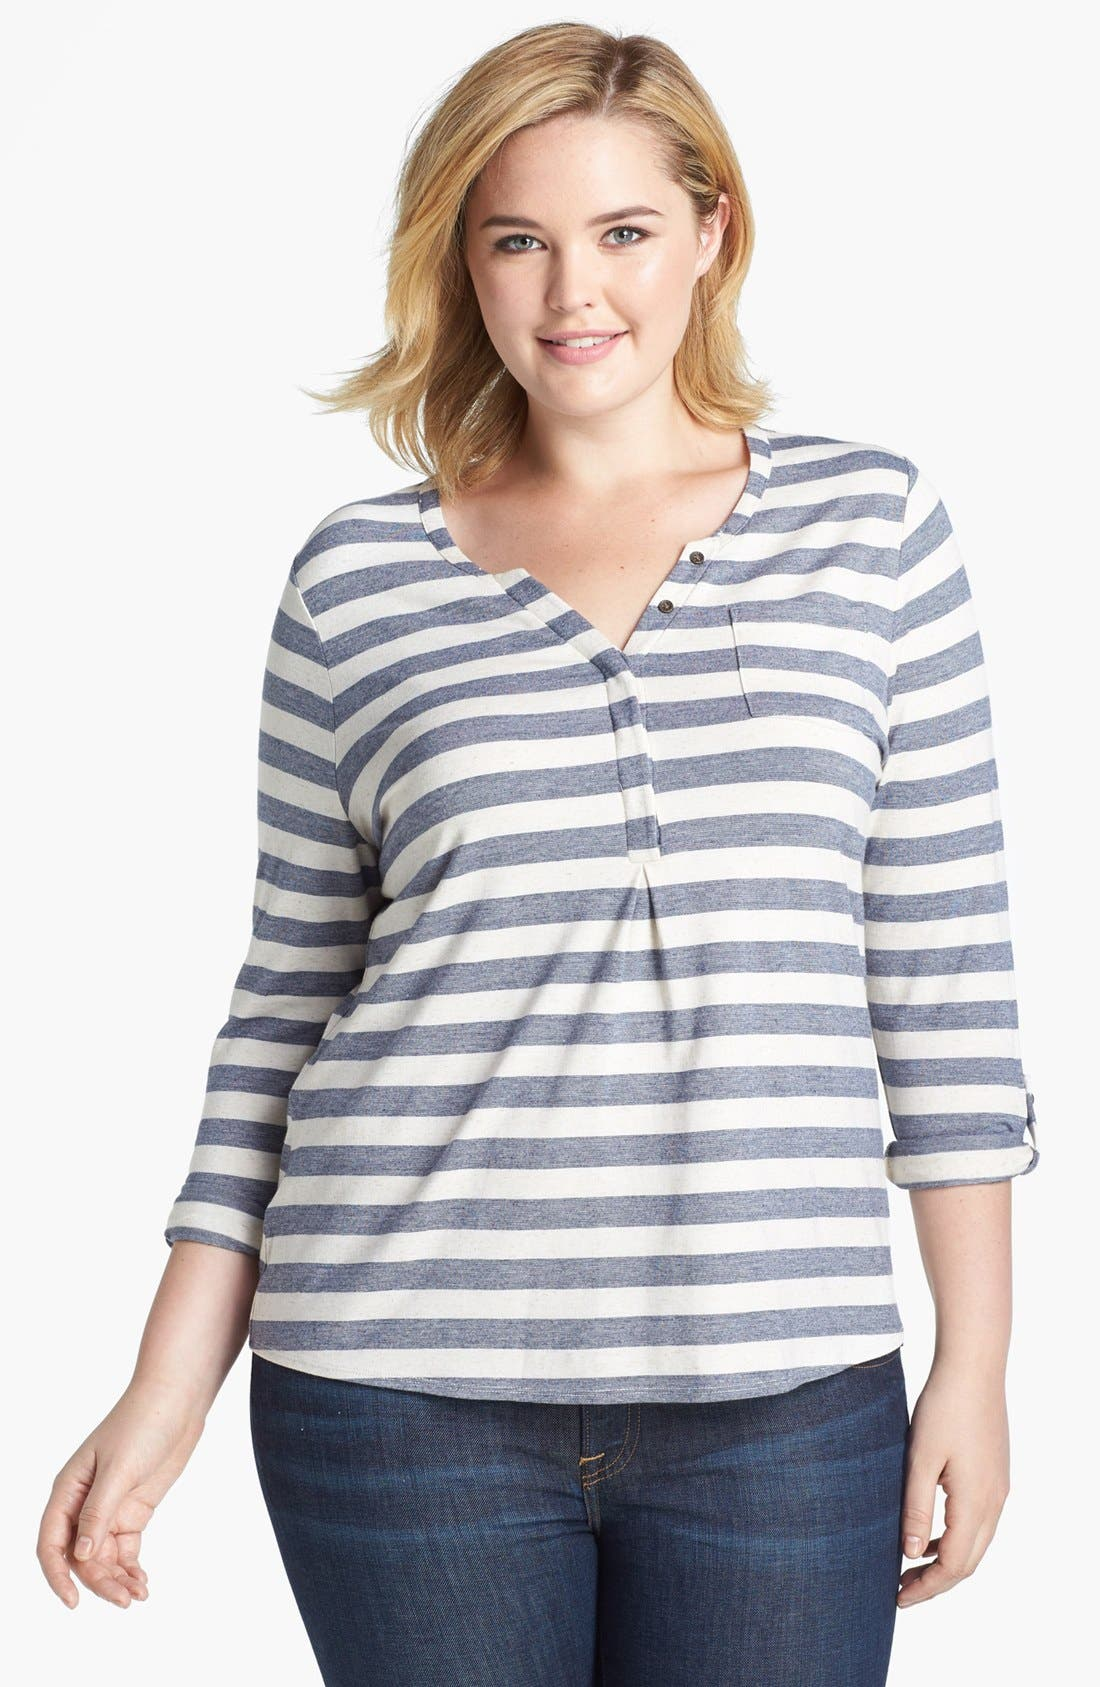 Alternate Image 1 Selected - Lucky Brand 'Dallas' Stripe Top (Plus Size)